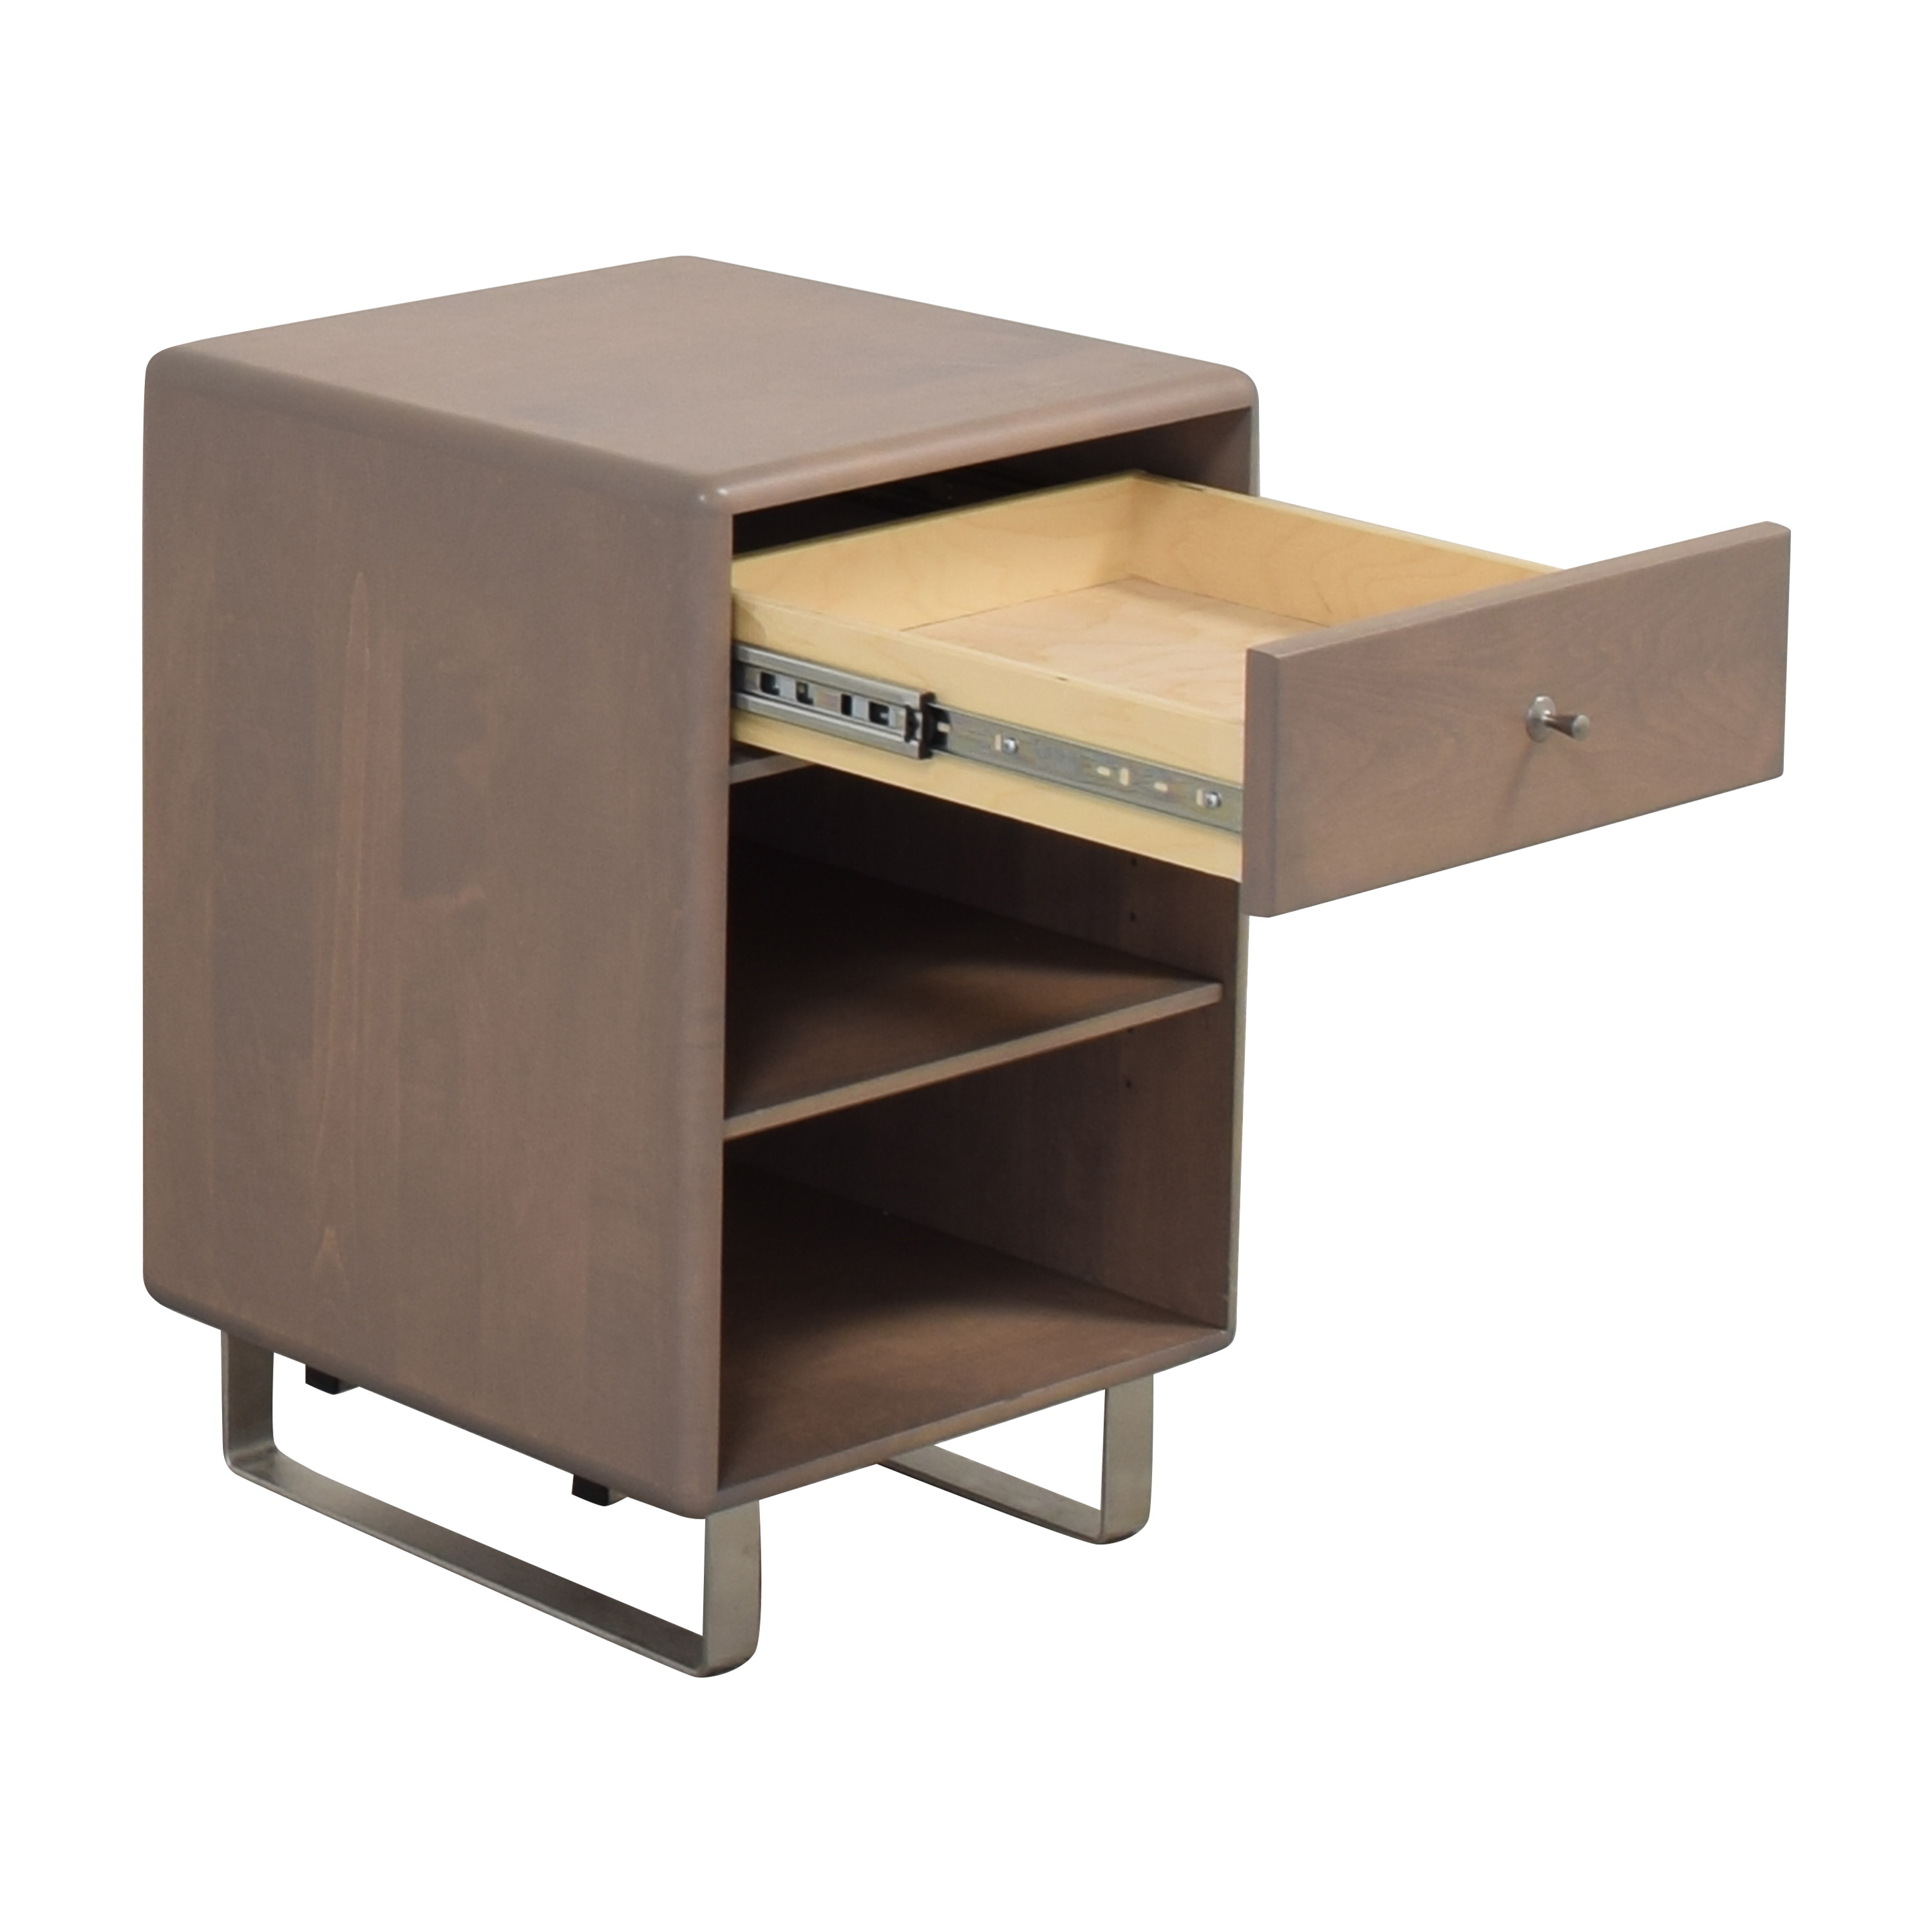 Room & Board Room & Board Whitney One Drawer Nightstand price